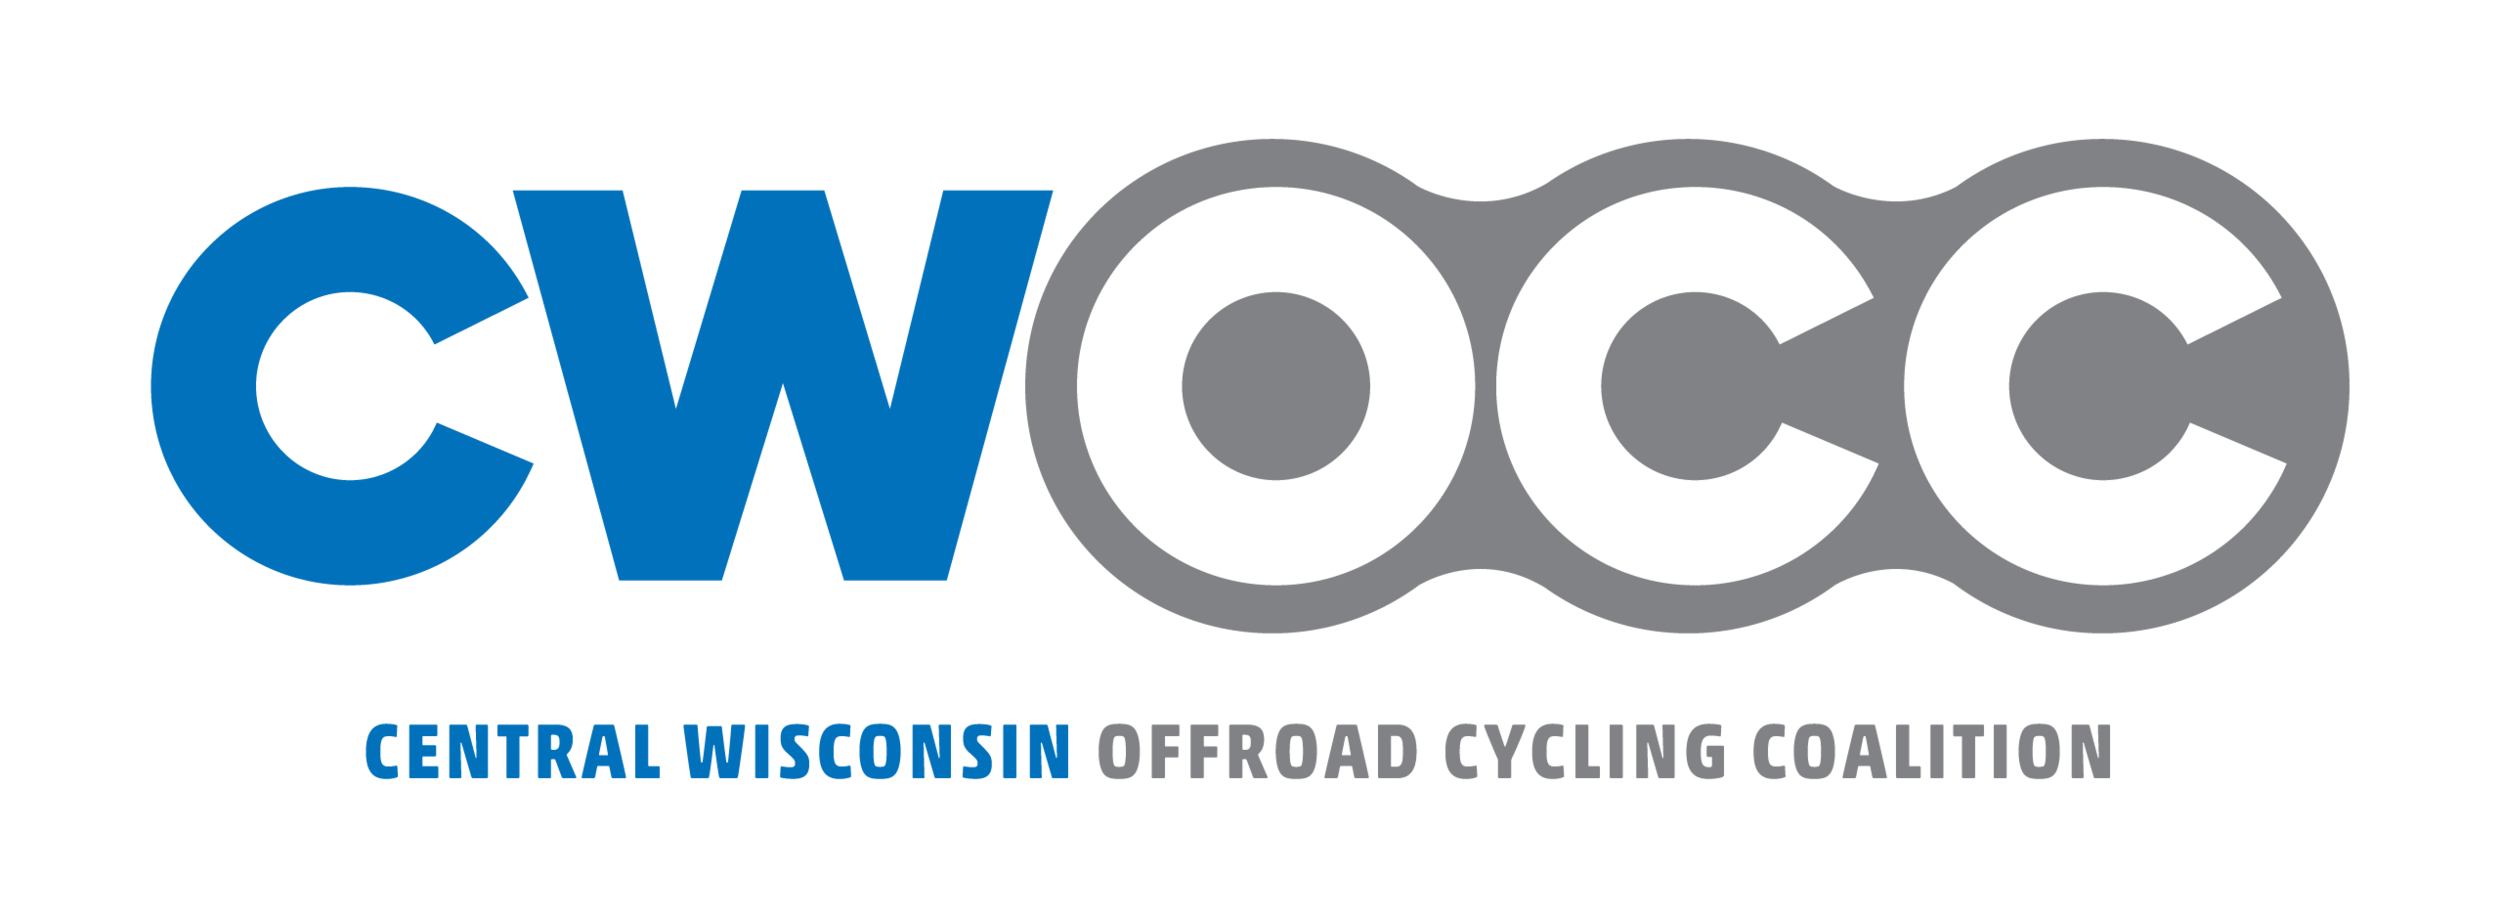 Central Wisconsin Offroad Cycling Coalition (CWOCC) Logo